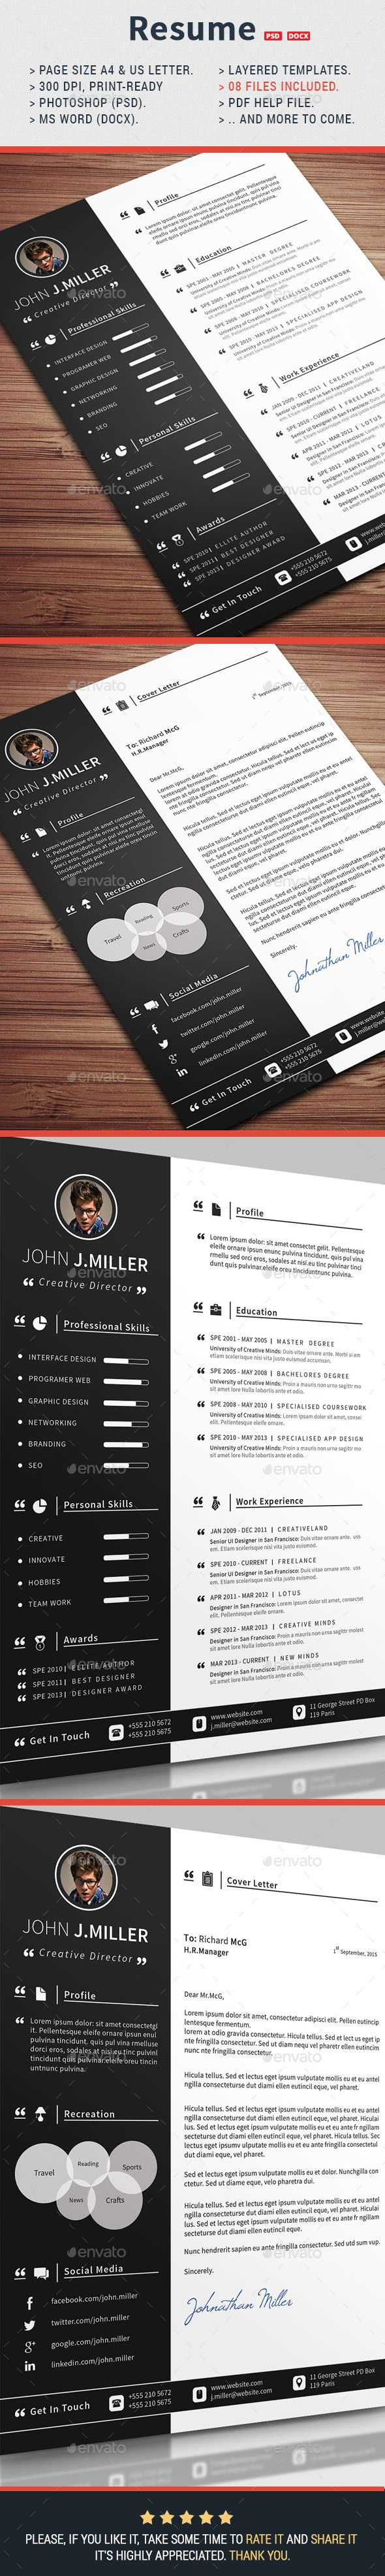 Cv Templates Design%0A Resume Template Download Resume Templates Free Microsoft Word Resume Ideas  Throughout Stunning Eye Dailymotion